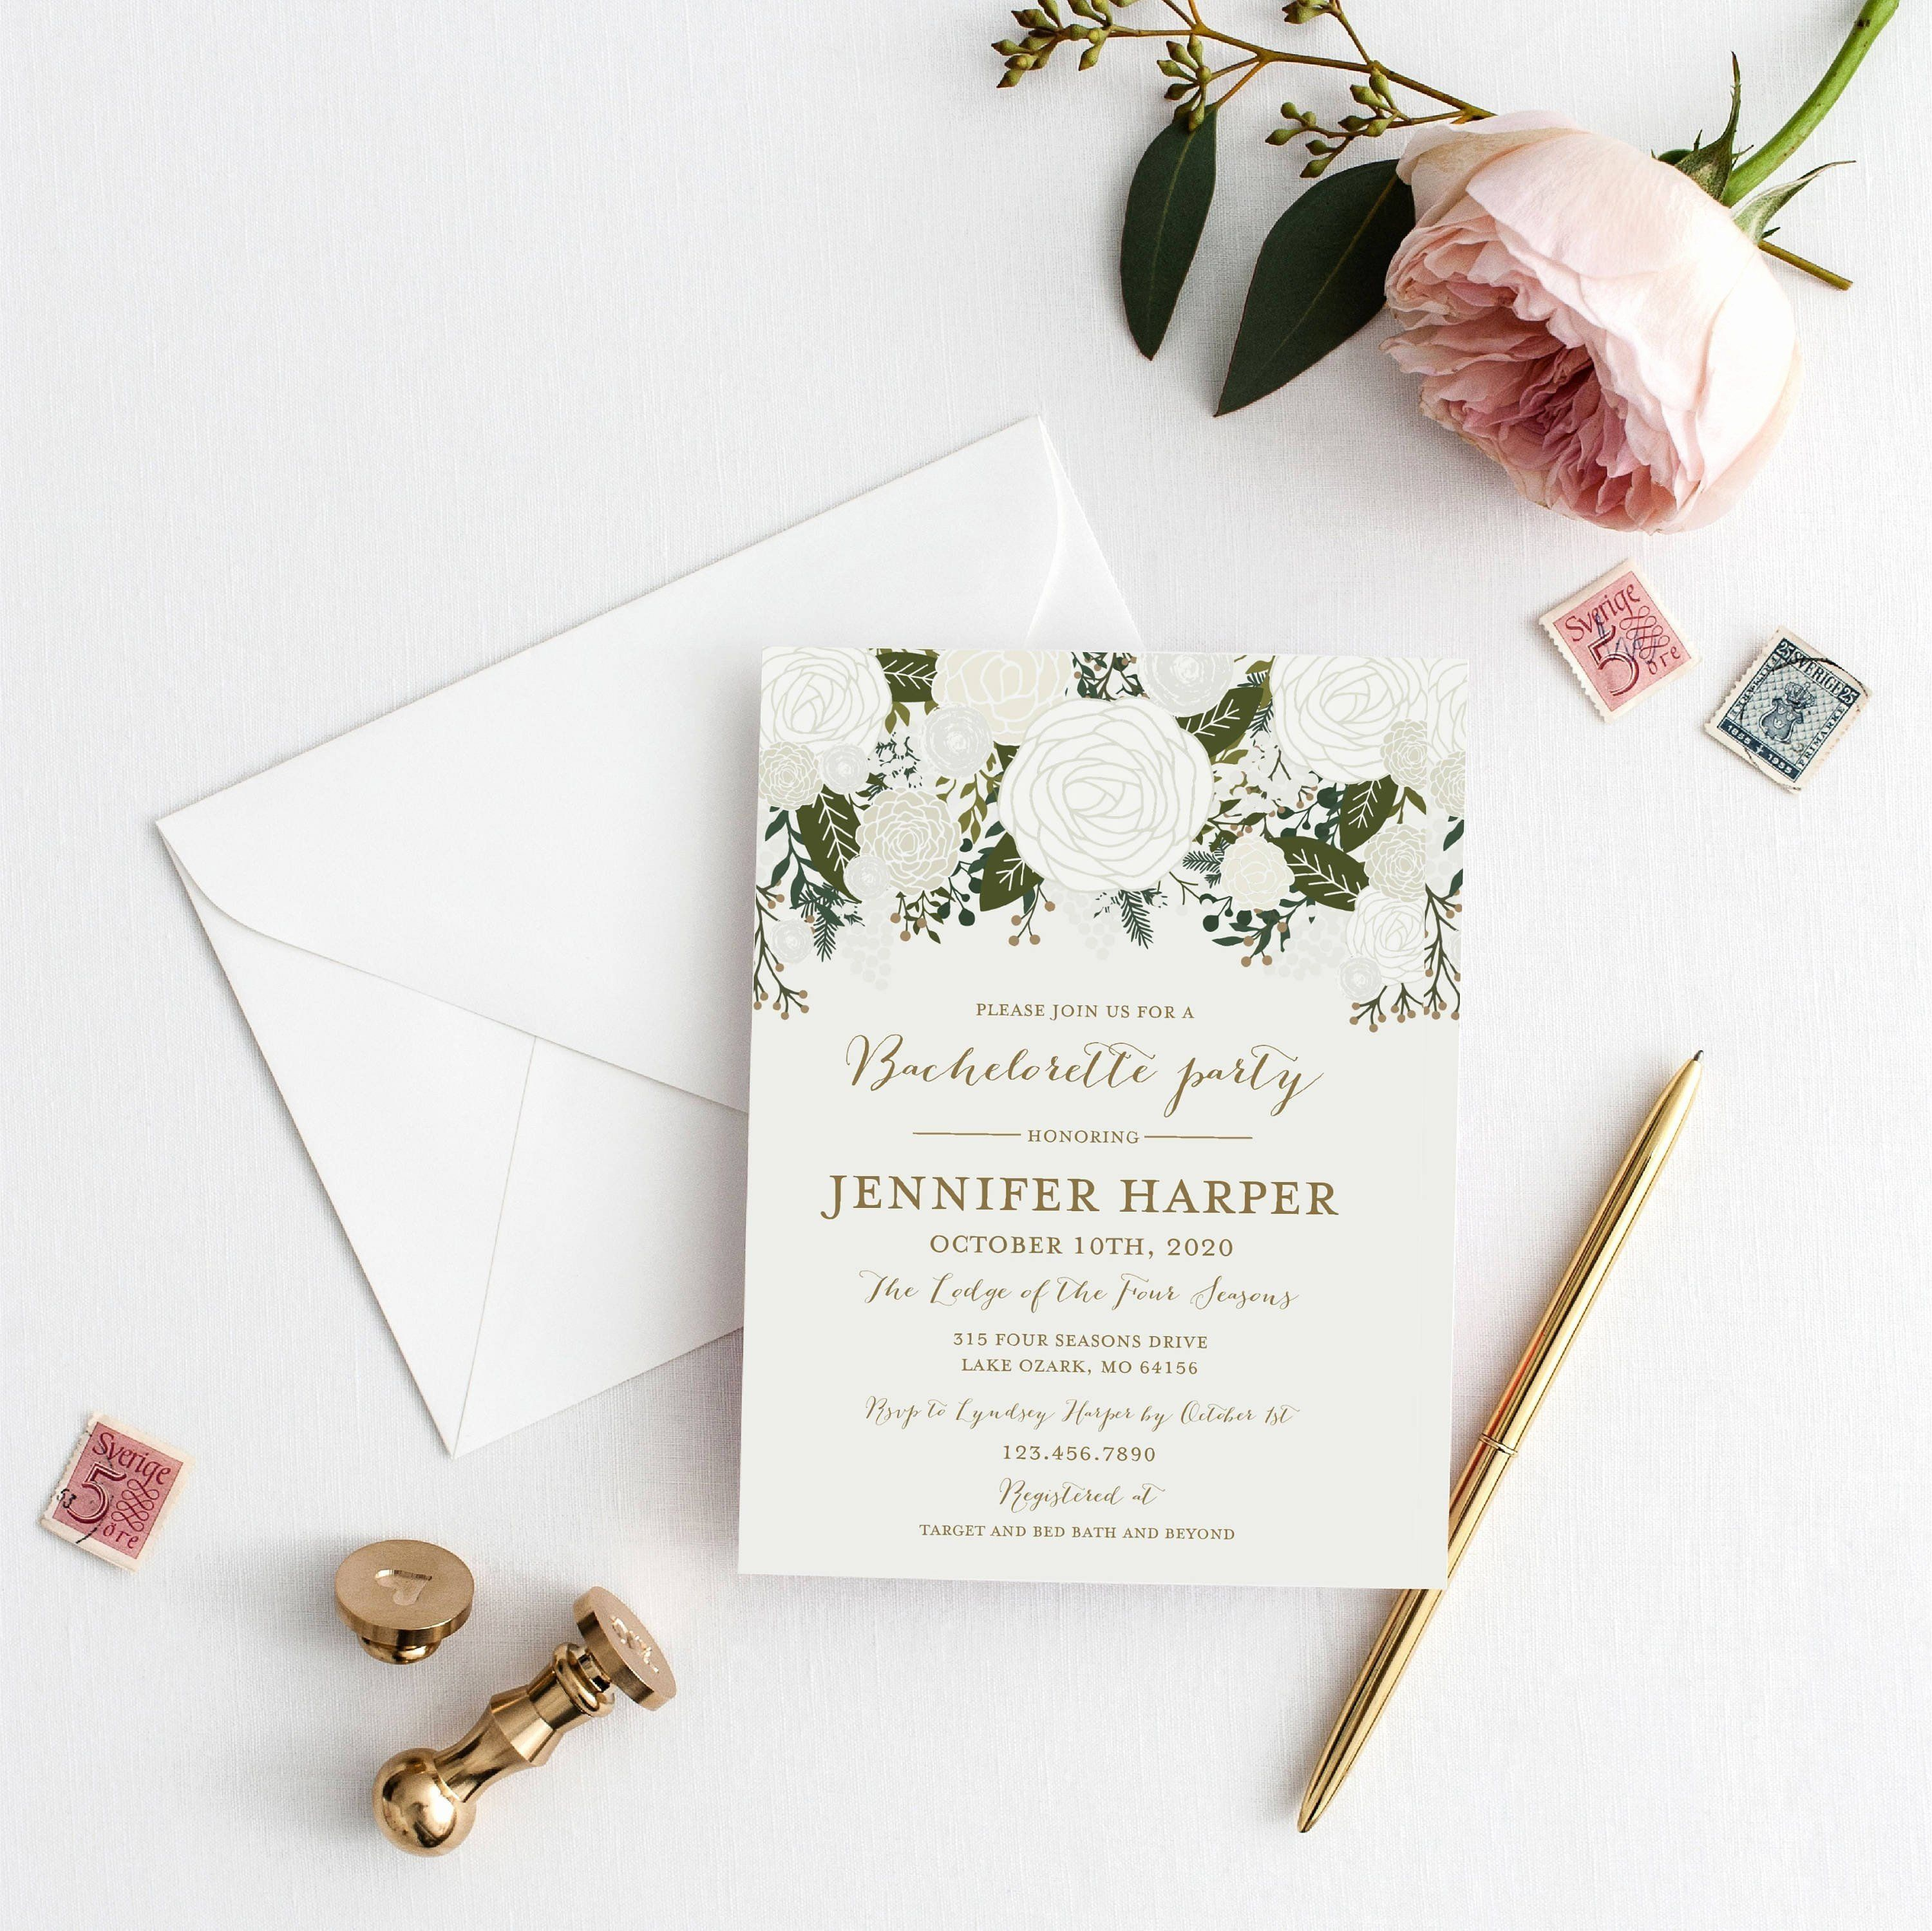 Bed Bath And Beyond Invitations Beautiful New Plantable Wedding Invitations In 2020 Floral Baby Shower Invitations Printable Wedding Invitations Party Invite Template